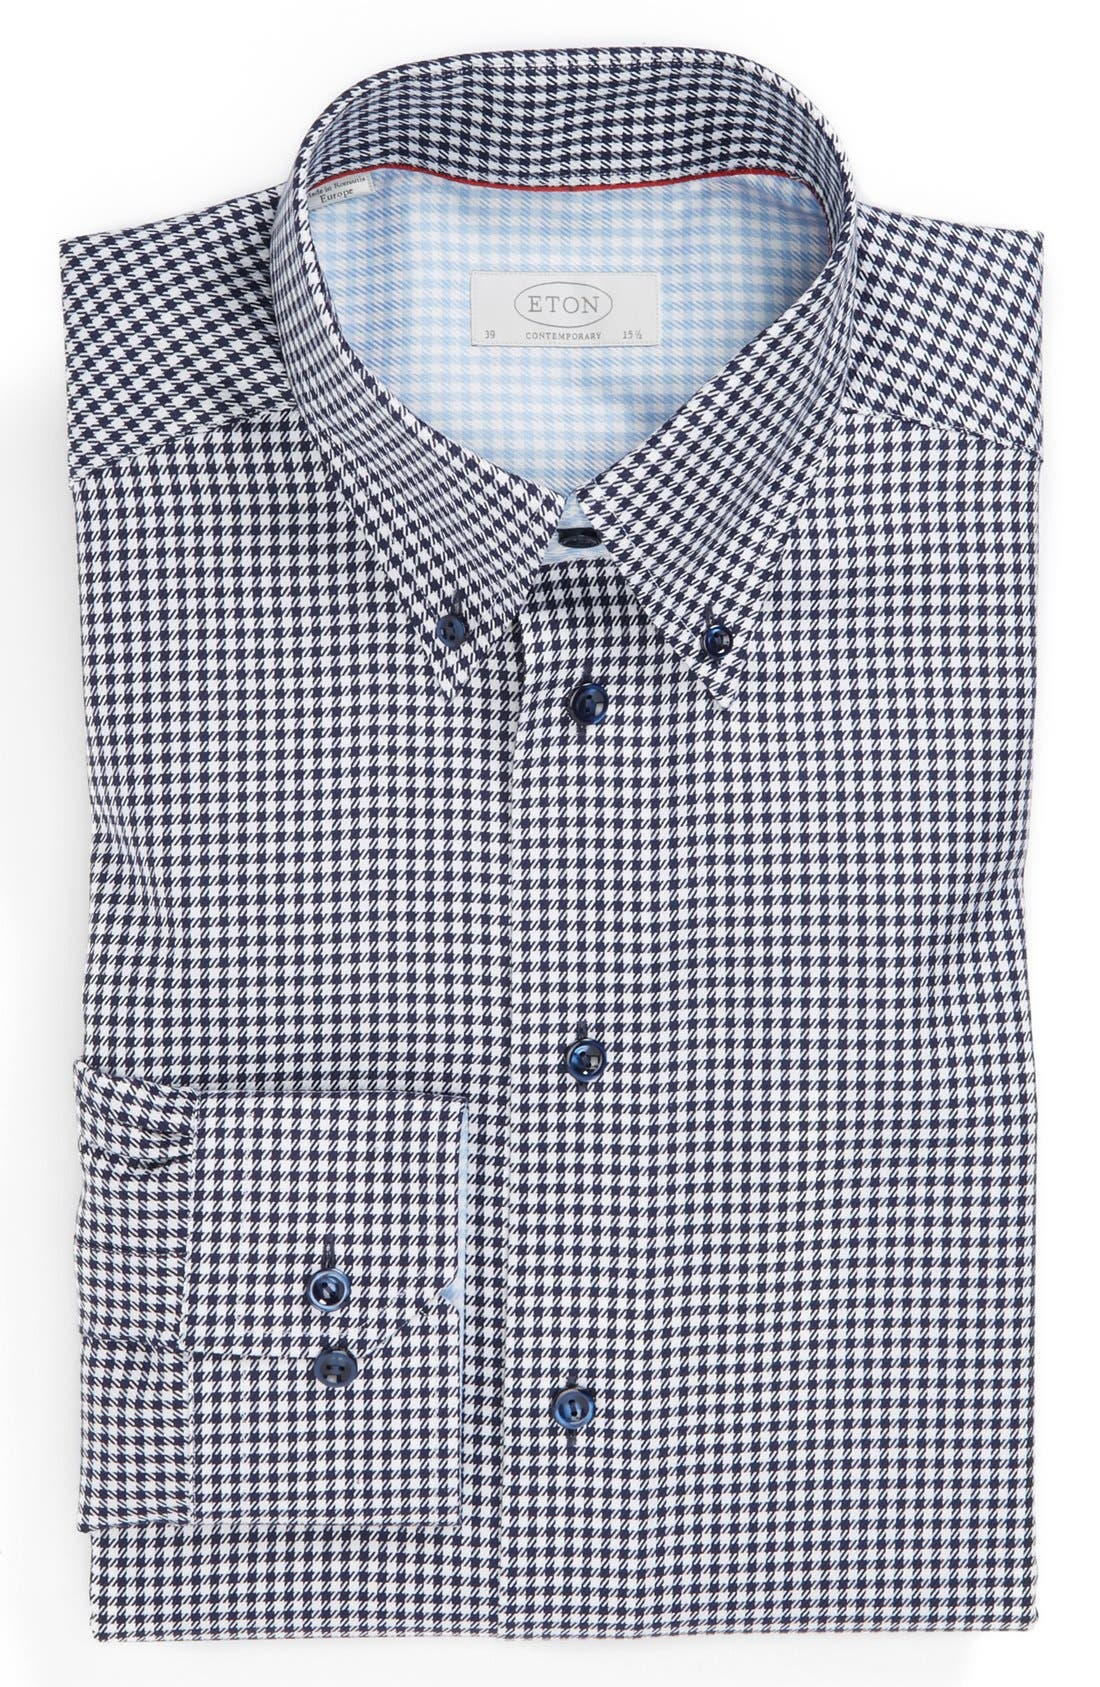 Main Image - Eton Contemporary Fit Non-Iron Dress Shirt